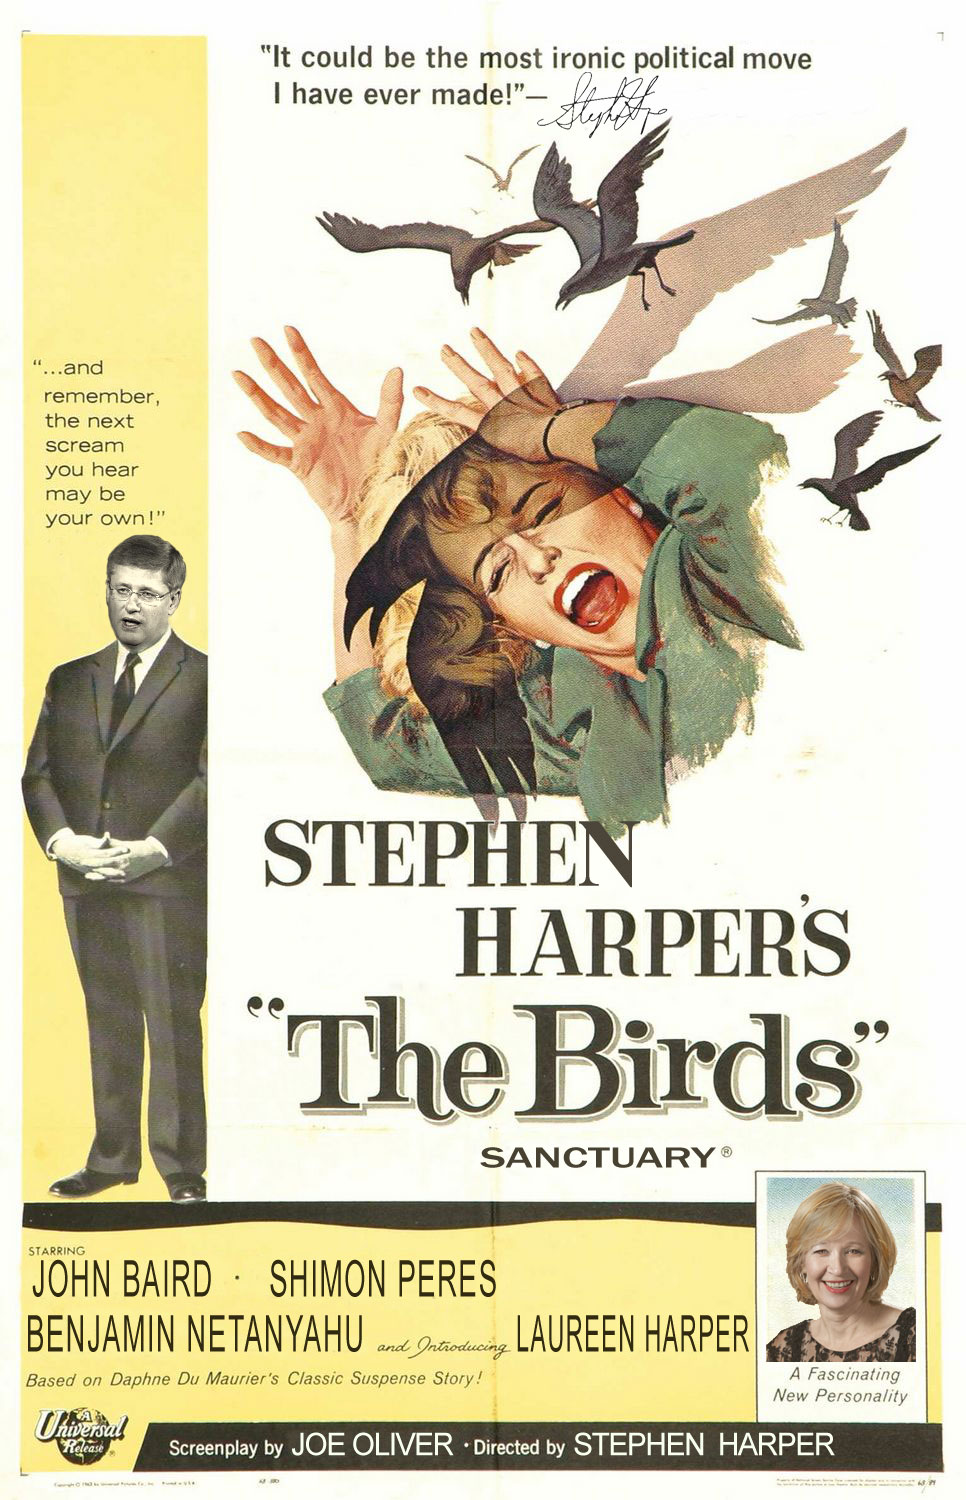 Stephen Harper's The Birds Sanctuary Poster